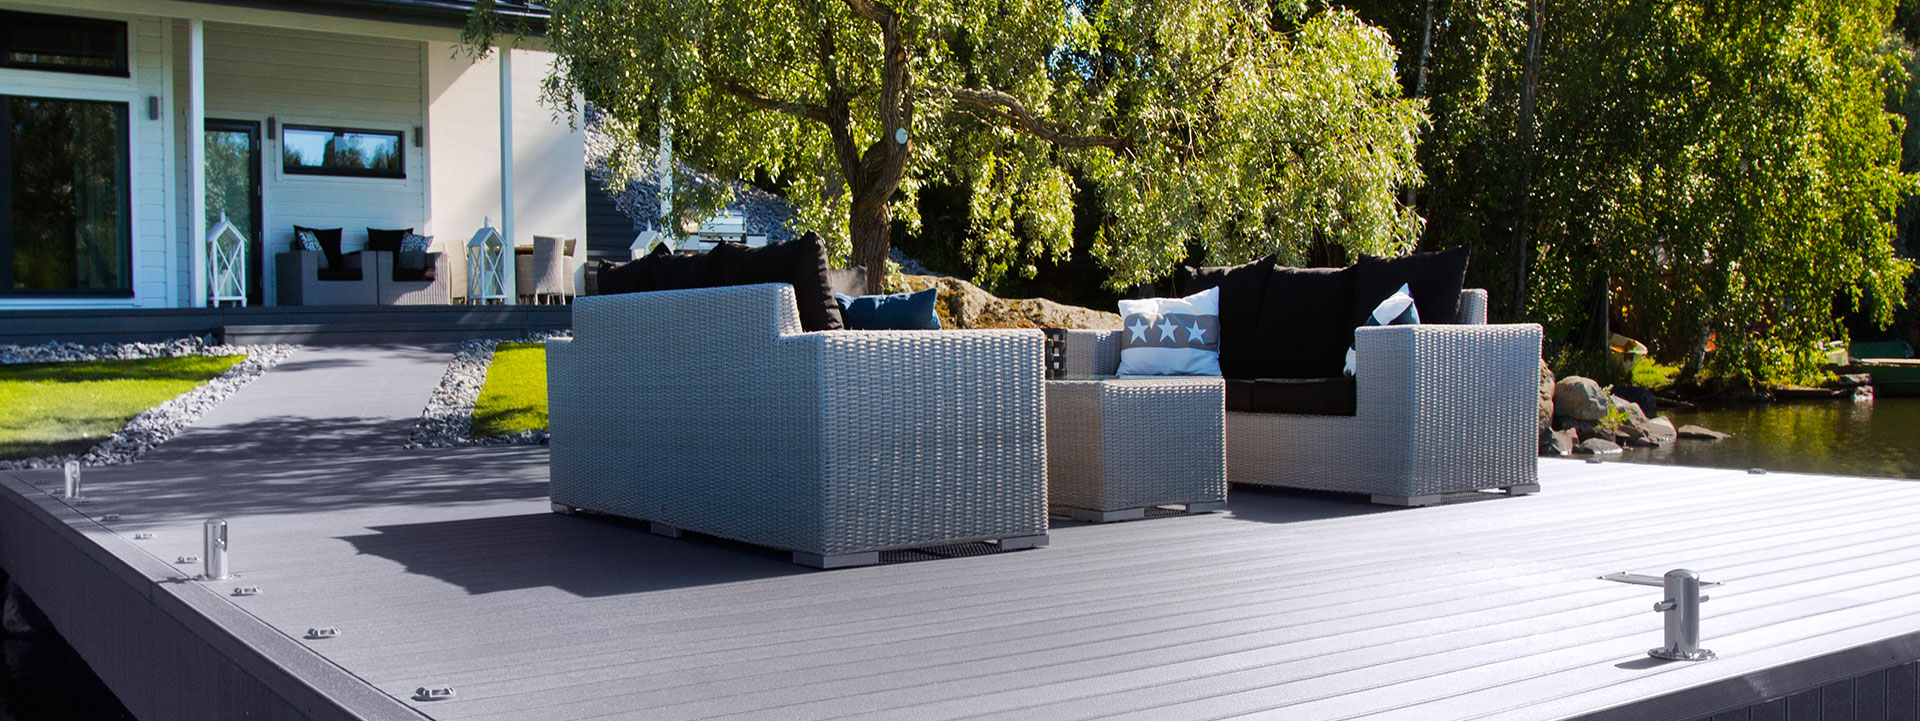 Composite decking with high friction surface